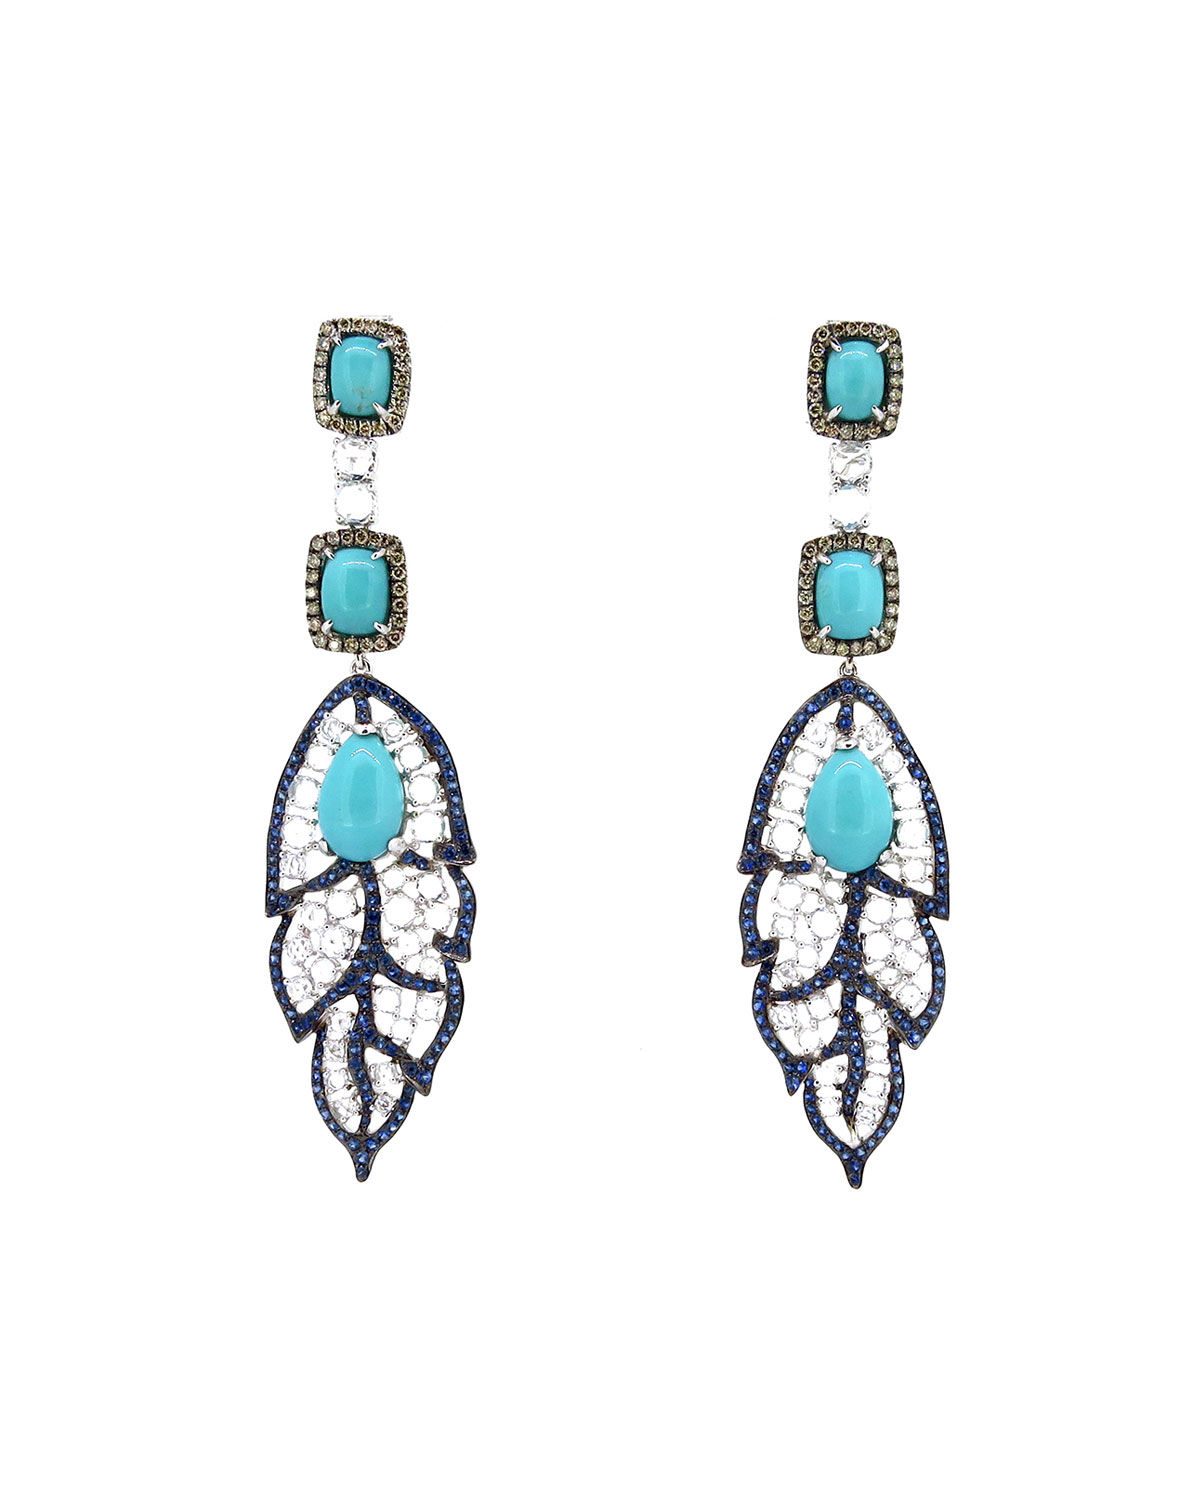 WENDY YUE 18K White Gold Turquoise Leaf Drop Earrings